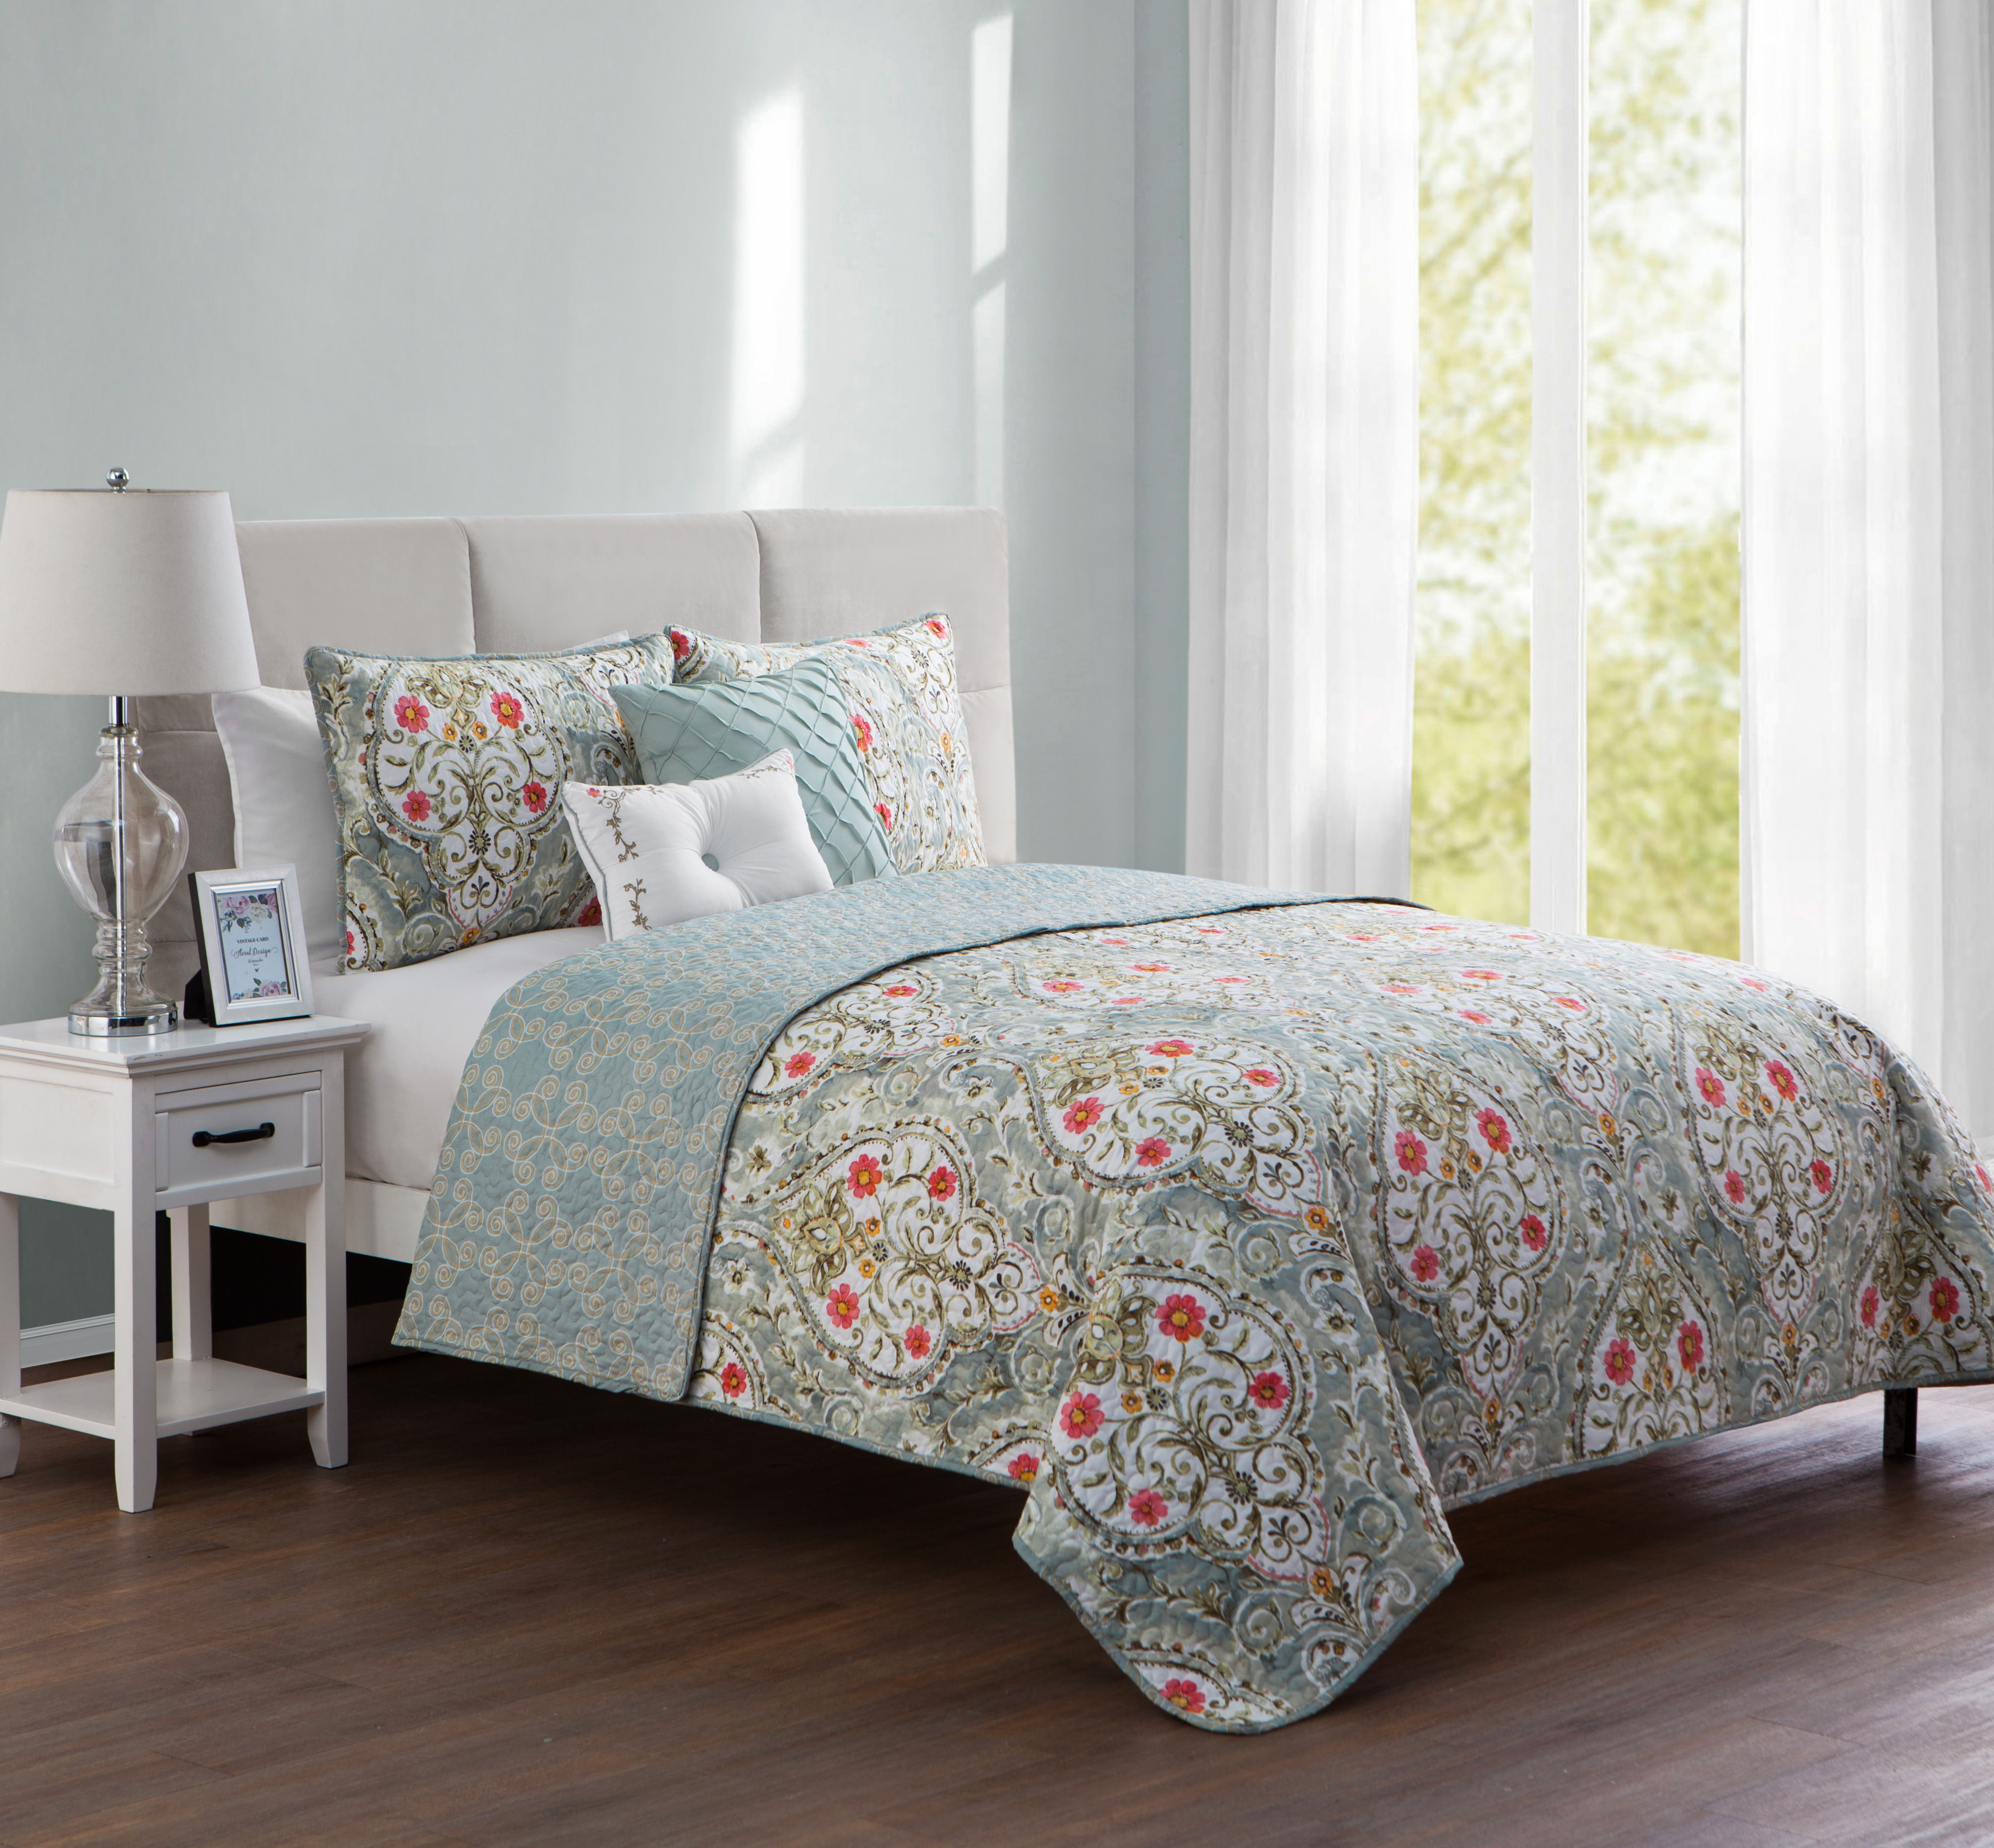 VCNY Home Blue Evangeline 4/5 Piece Reversible Bedding Quilt Set, Shams and Decorative Pillows Included